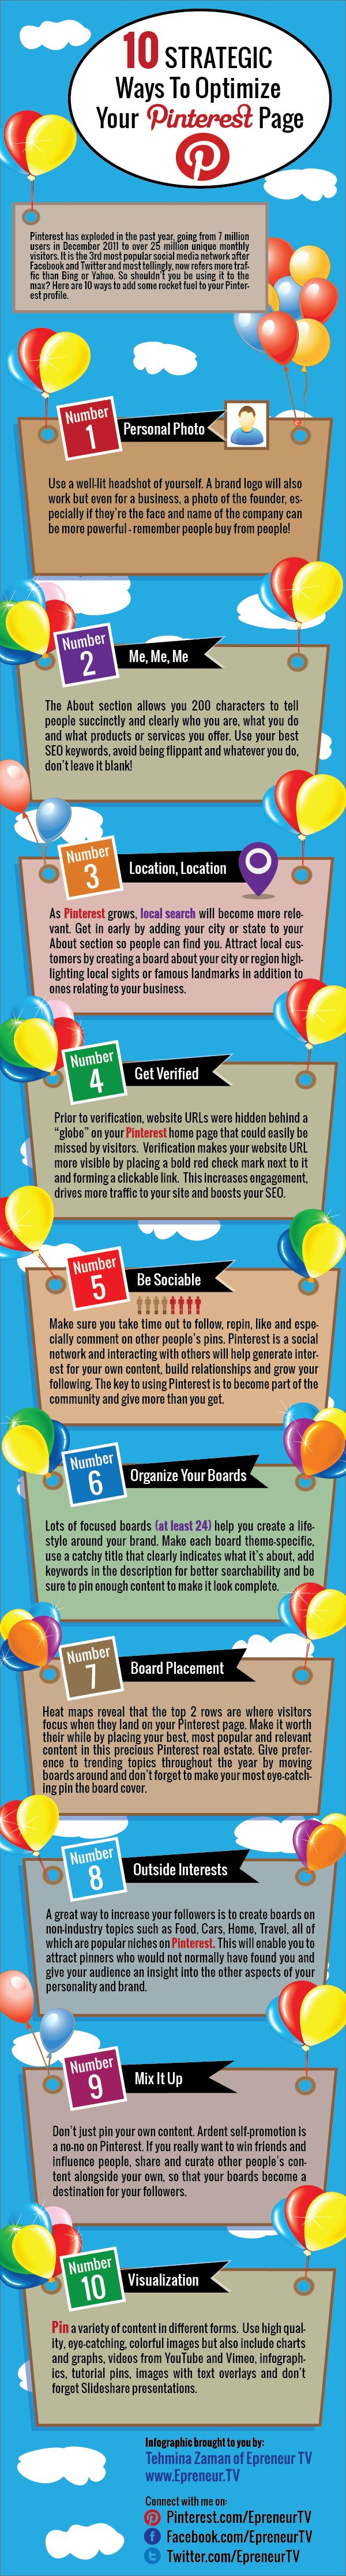 10 Strategic Ways to Optimize Your Pinterest Page – Infographic